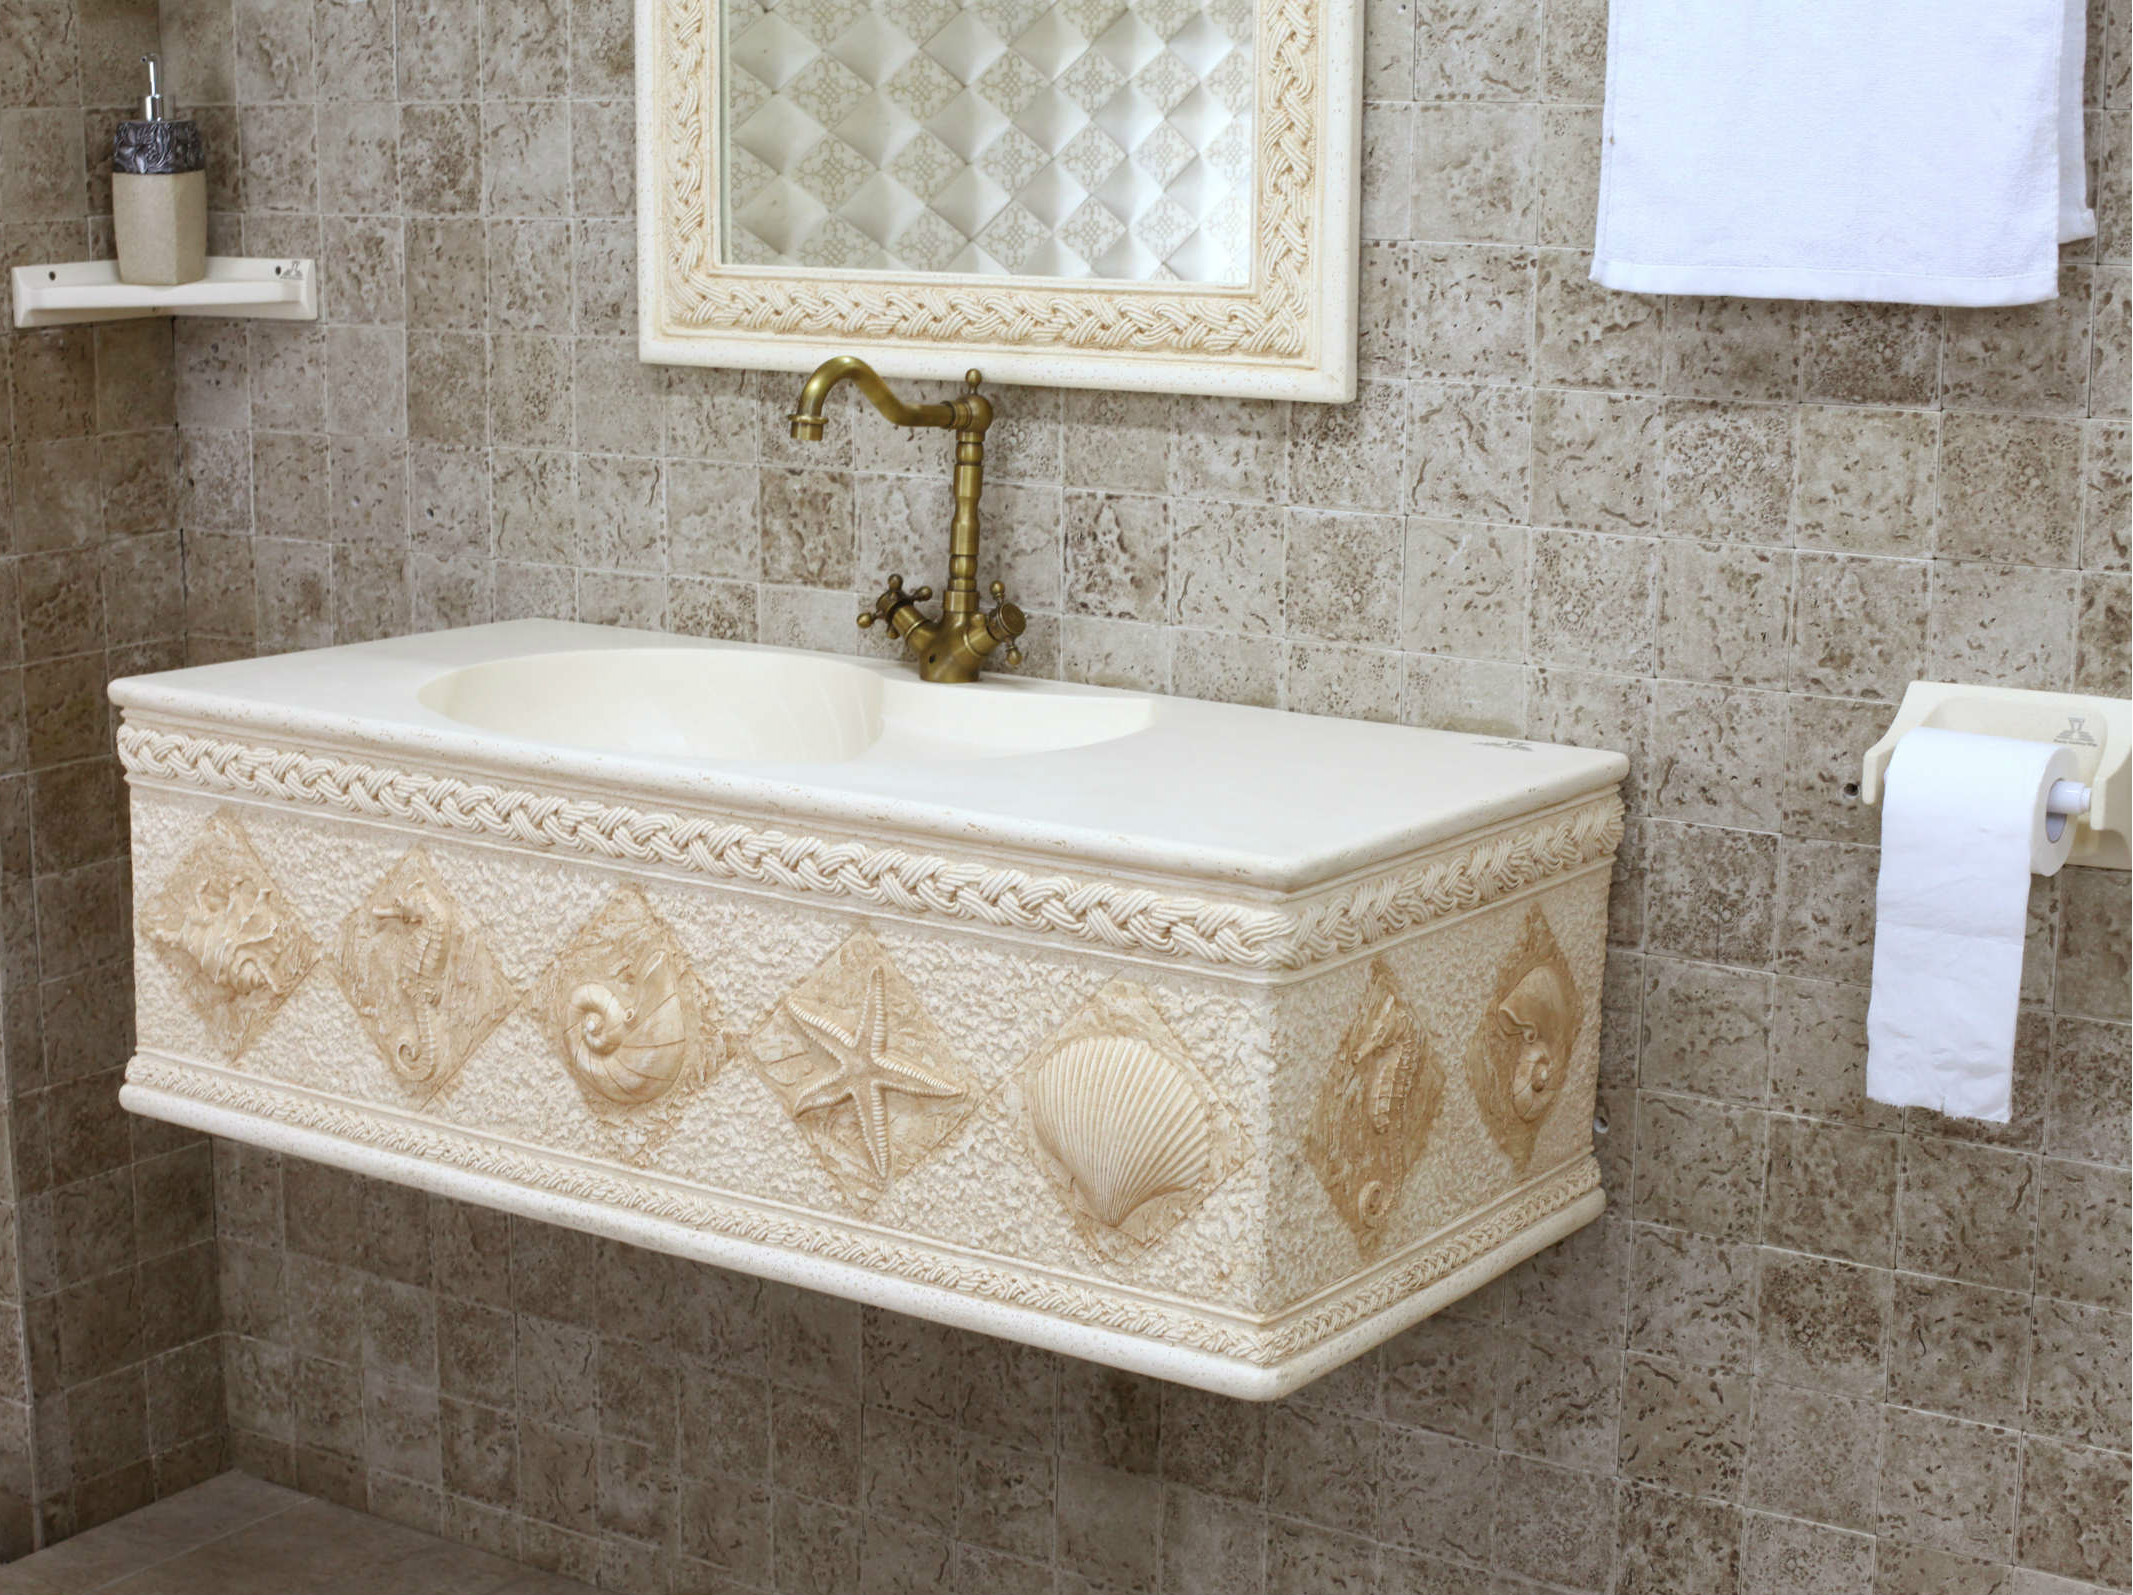 Bathroom Sinks Online online get cheap stone bathroom sink -aliexpress | alibaba group